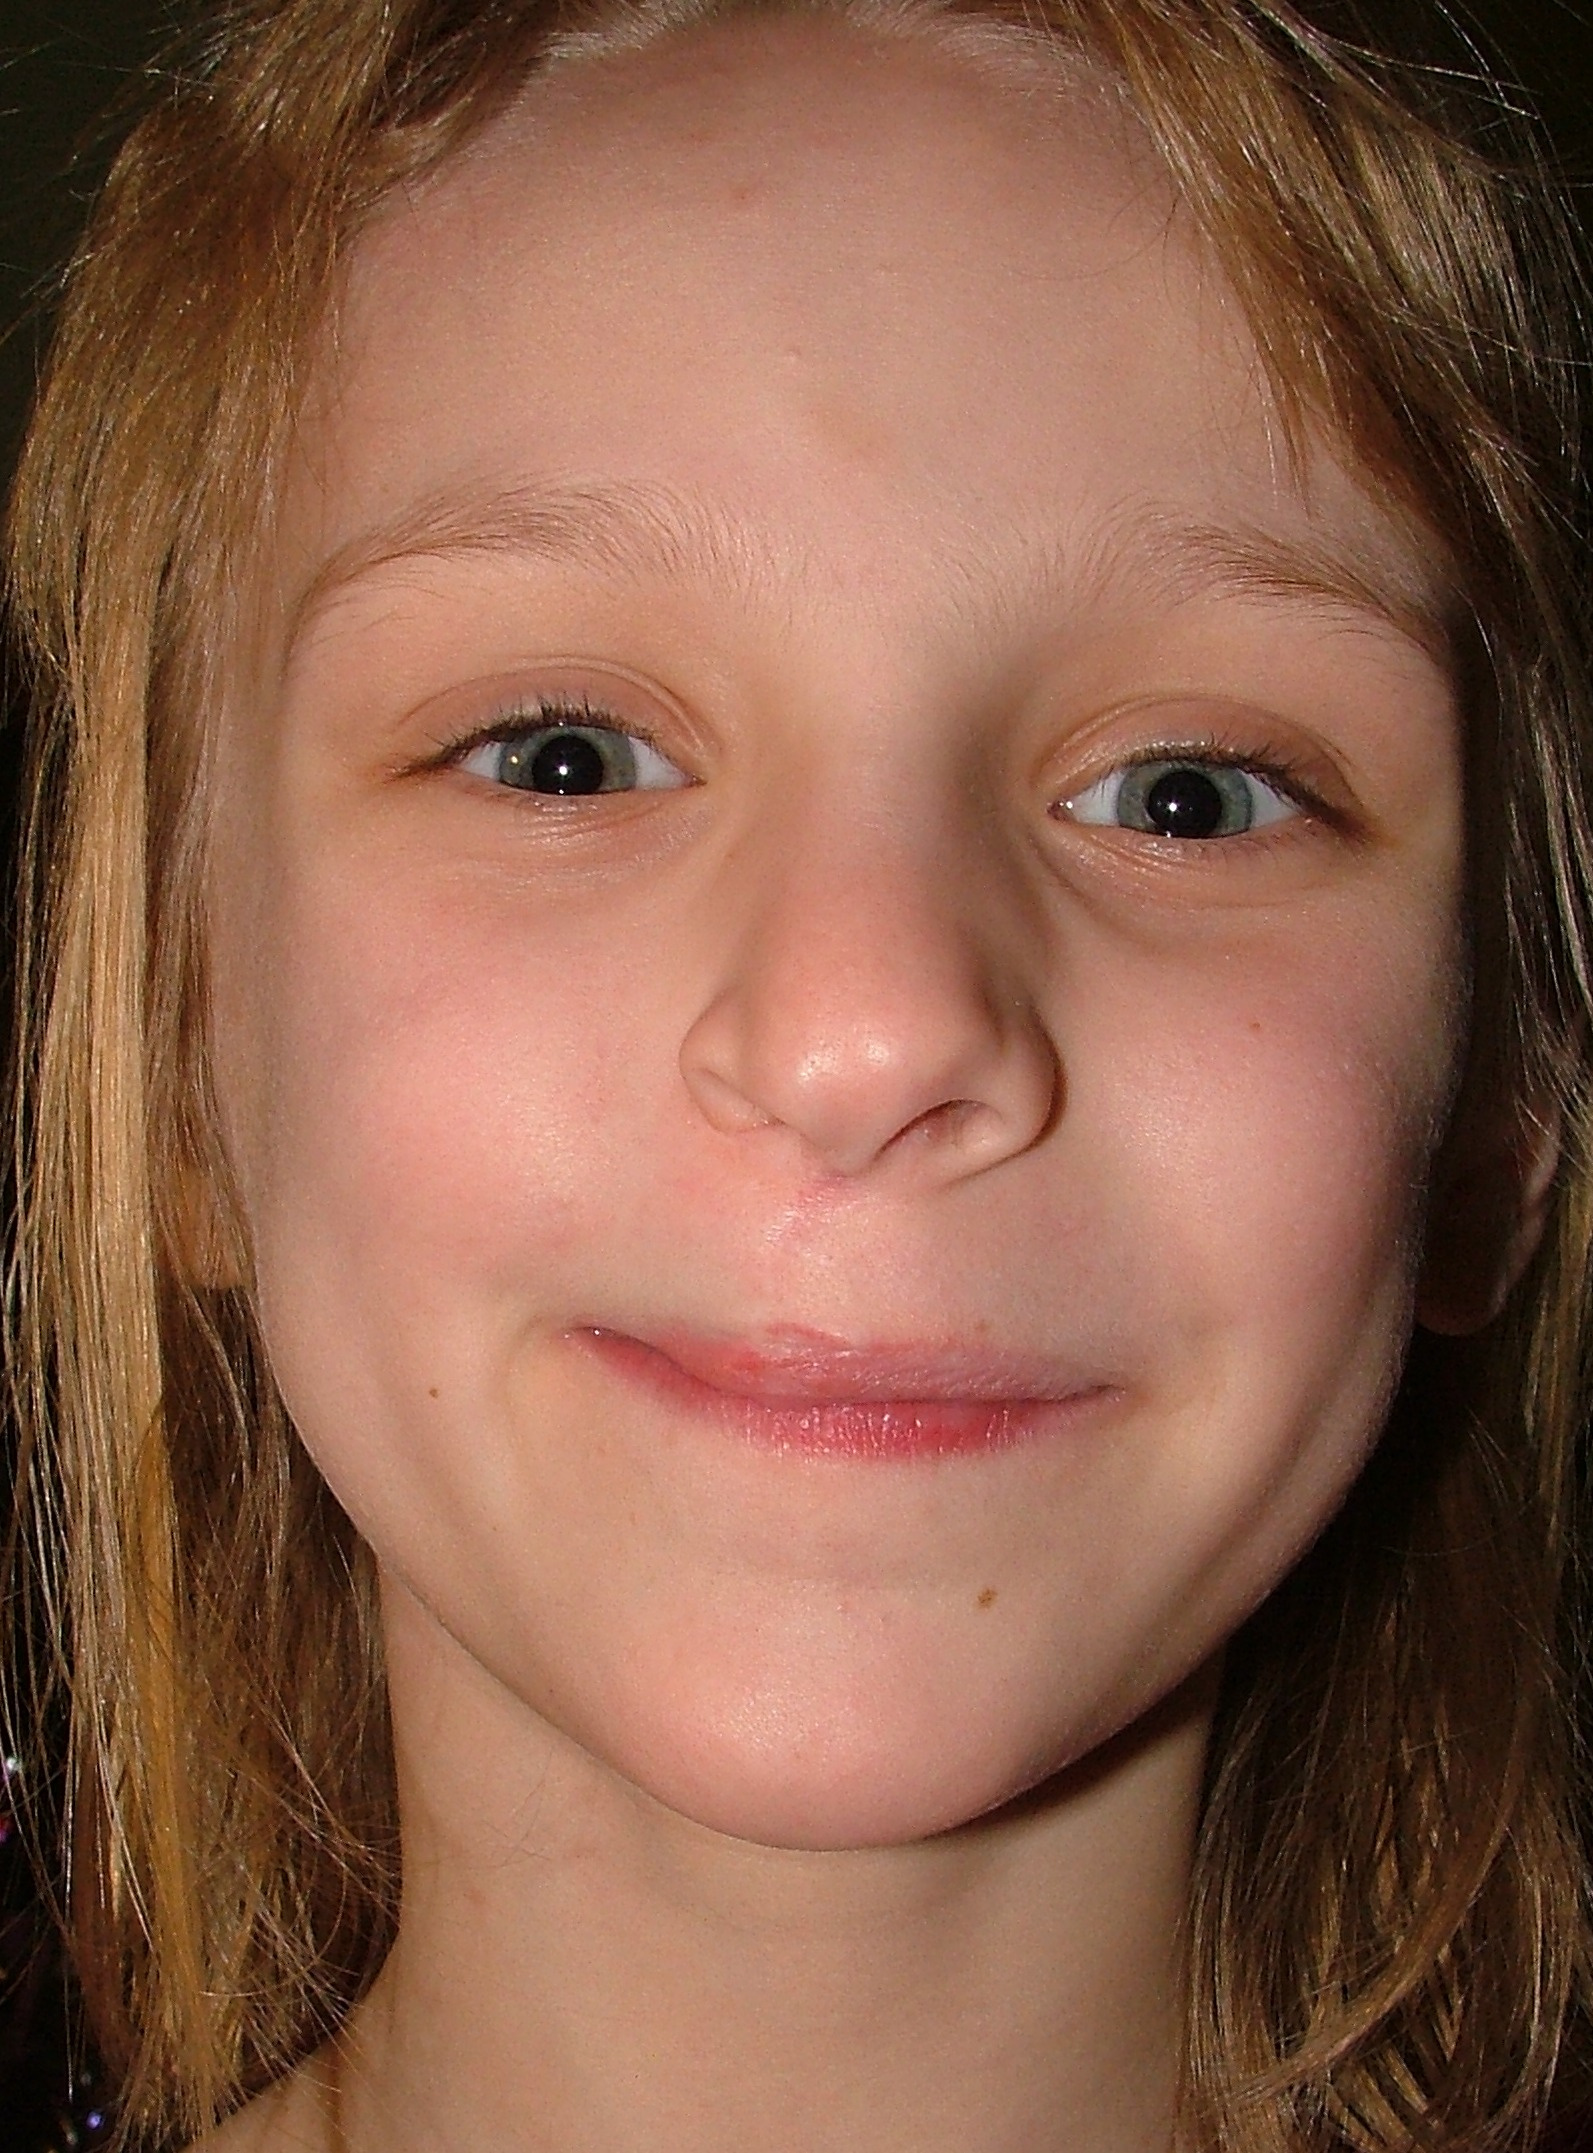 File:8-year-old girl showing scar from infantile facial reconstruction